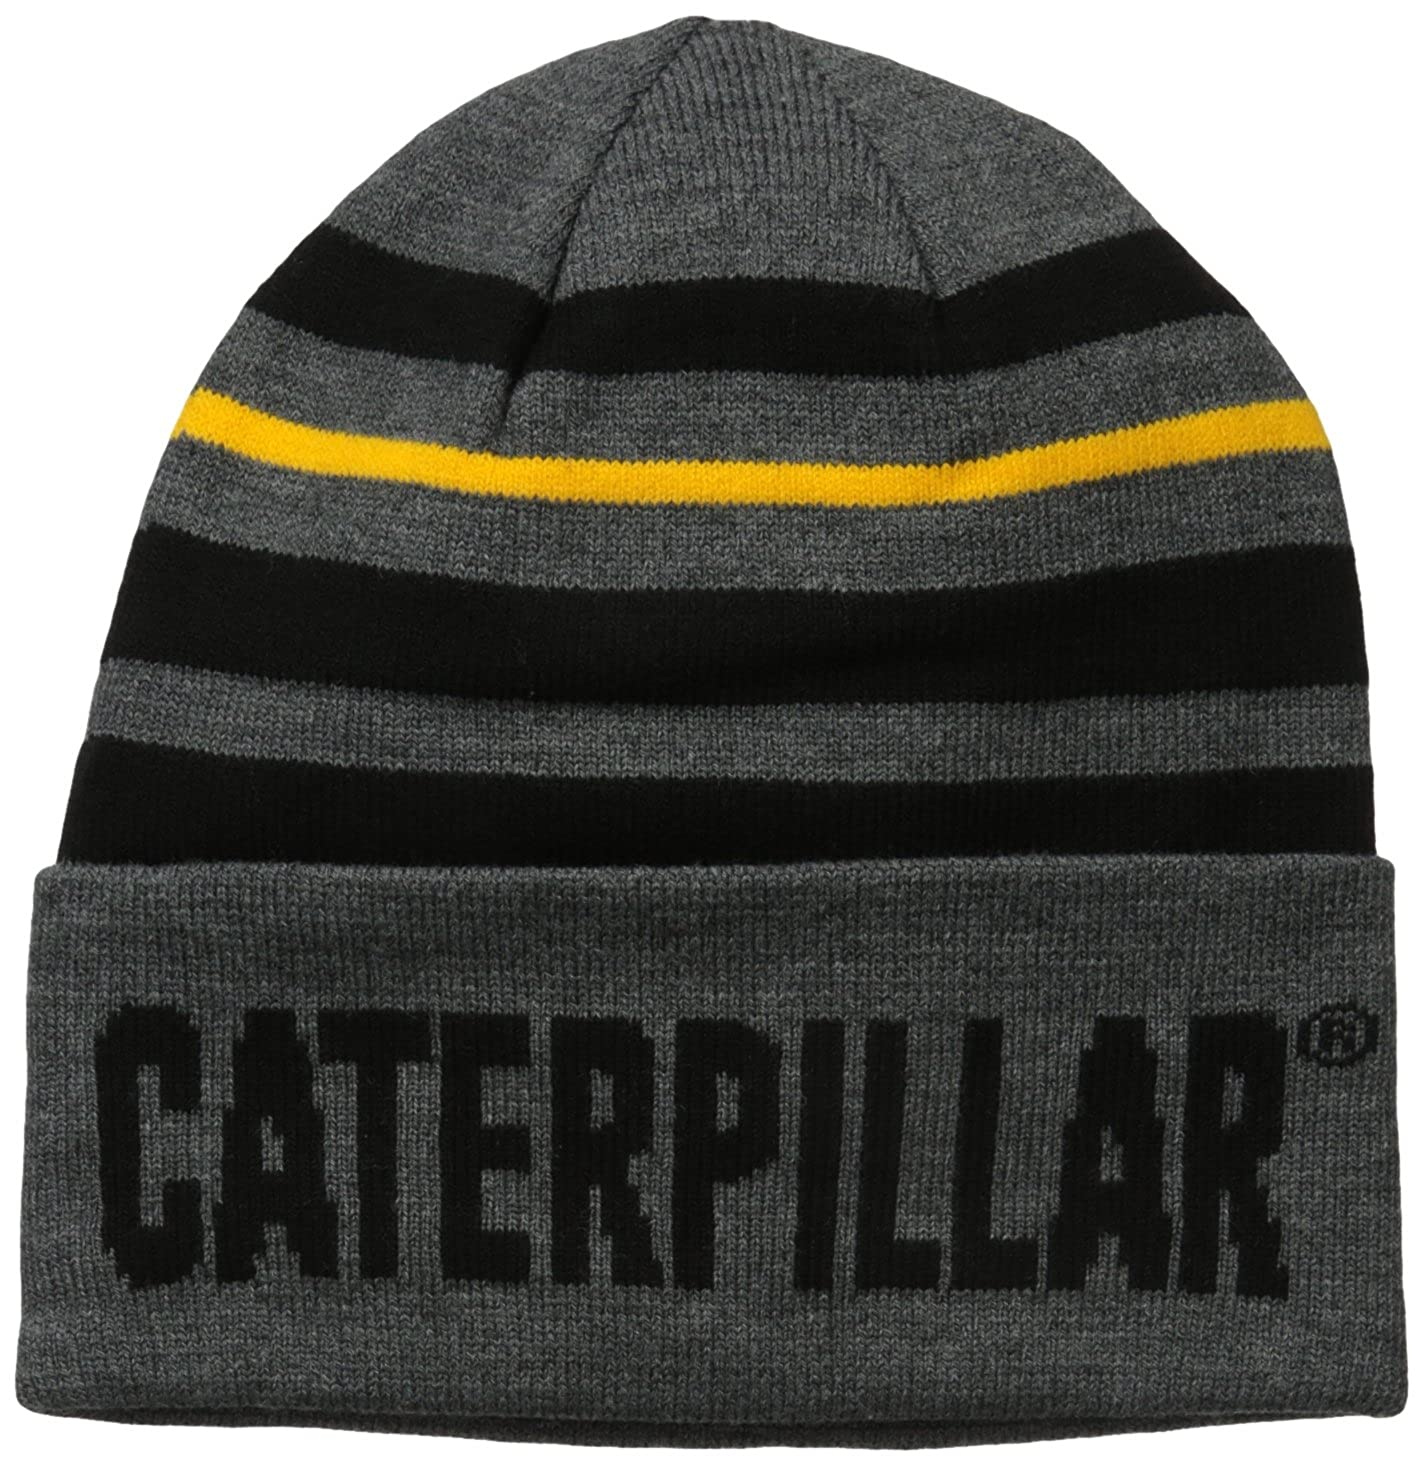 Caterpillar Men's Tumbler Knit Cap Dark Heather Grey One Size 1120030